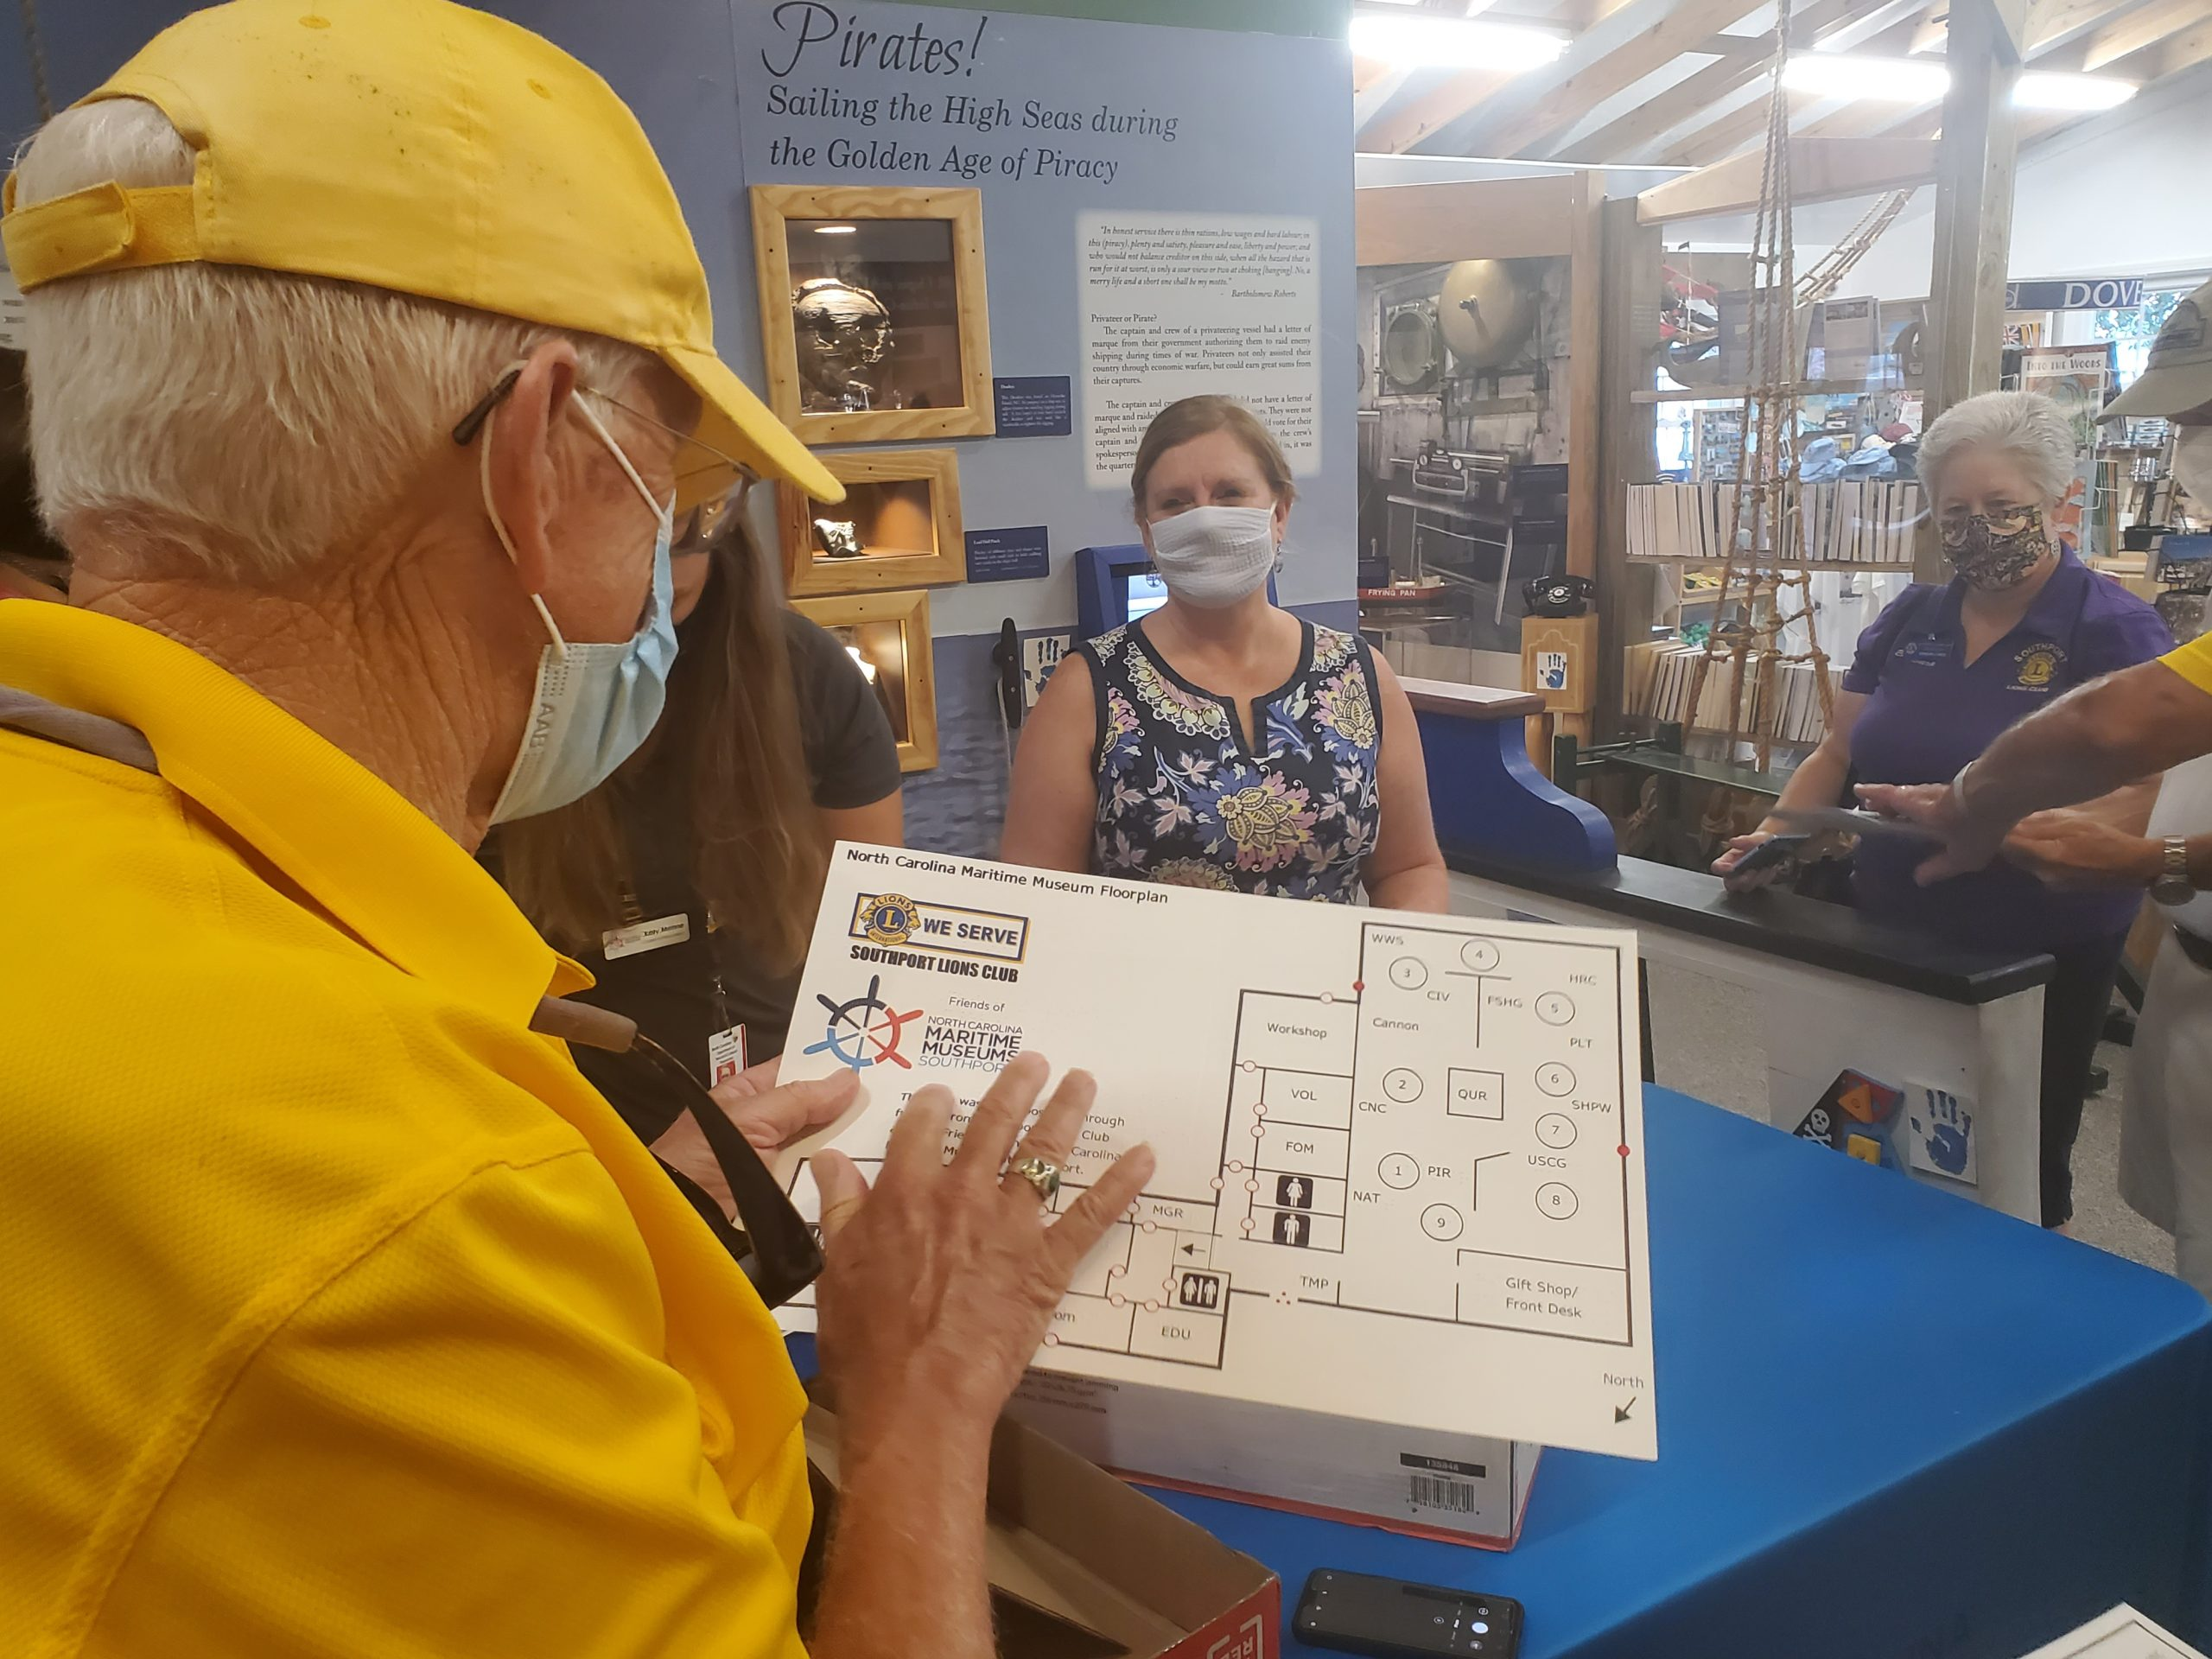 Lions club member holding new tactile map